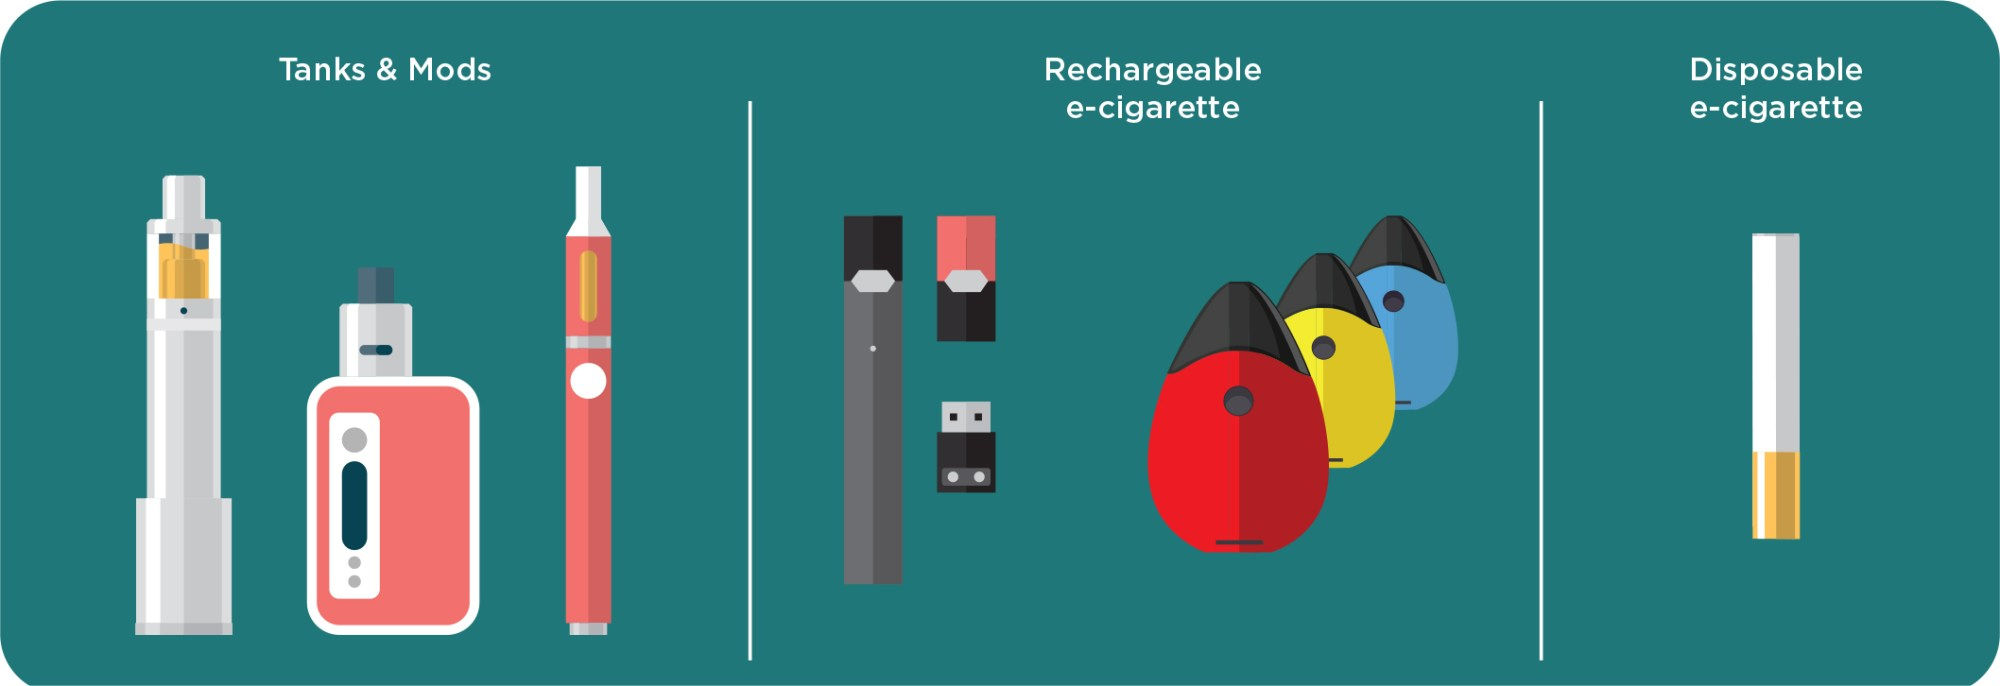 hight resolution of photo of an e pipe e cigar tank devices and rechargeable